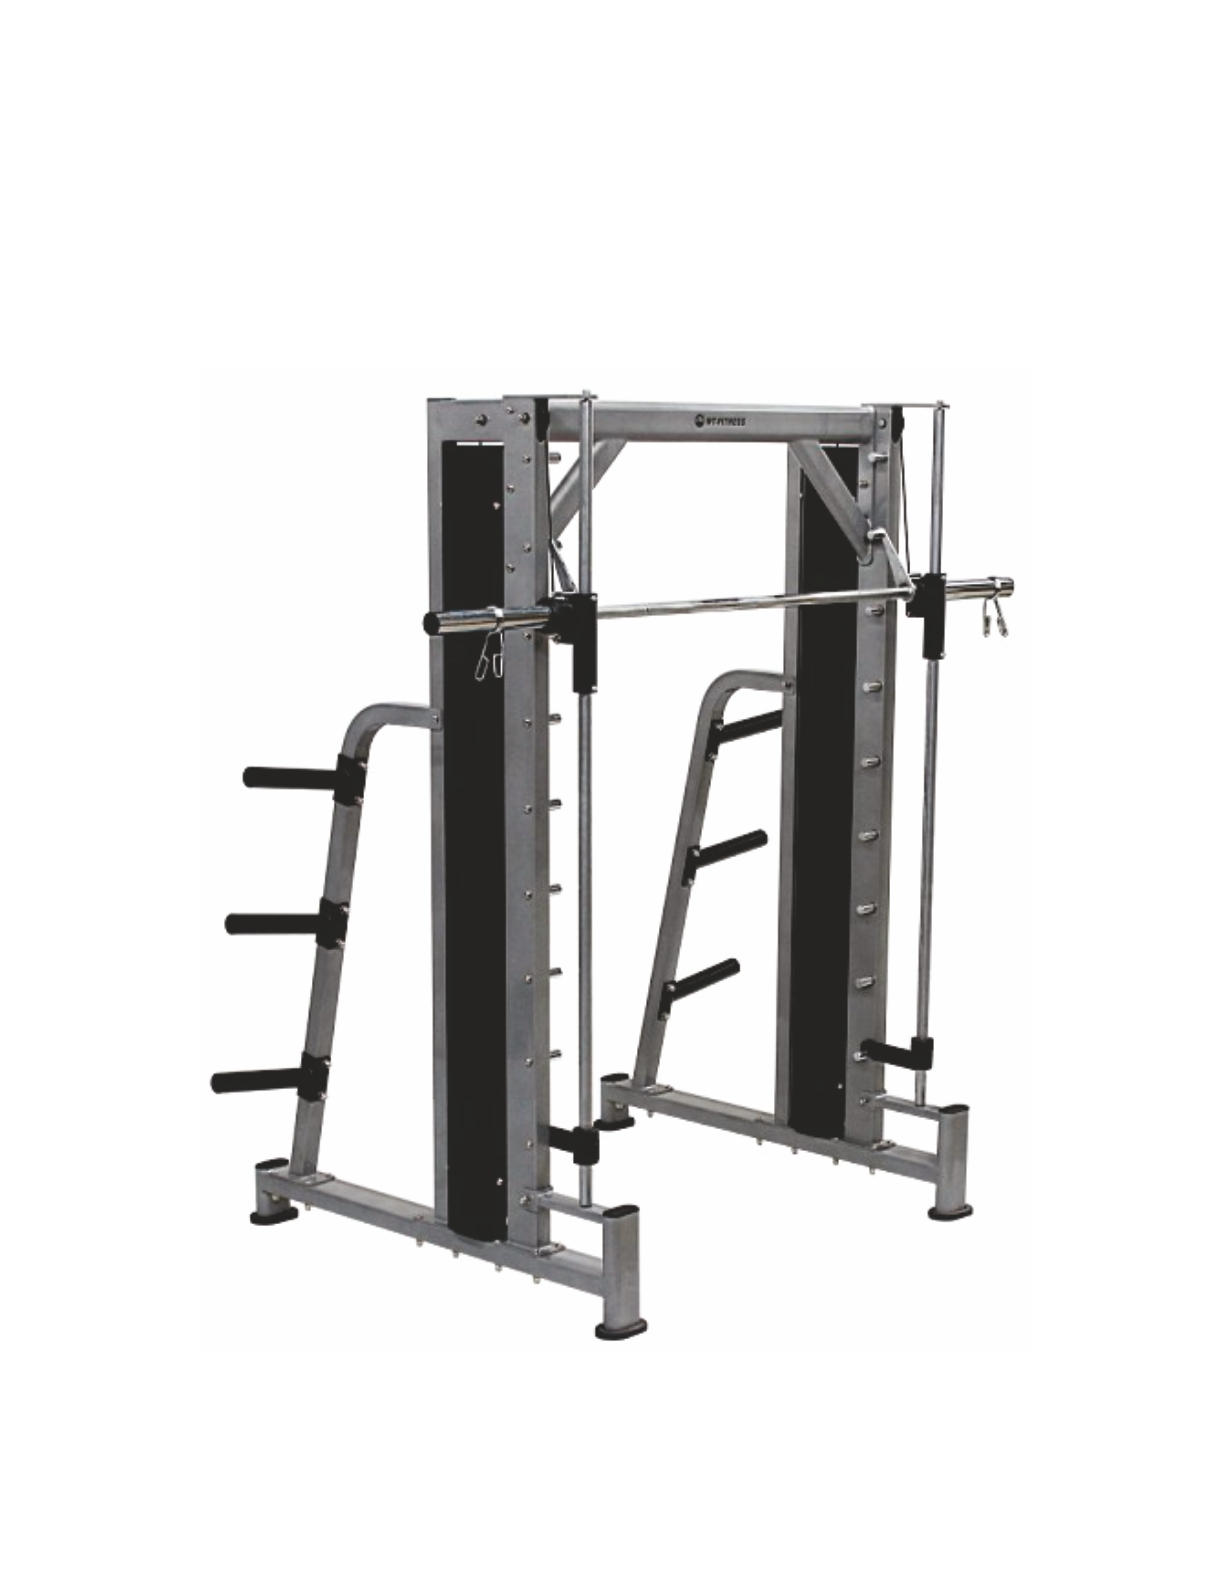 WT3001 SMITH MACHINE